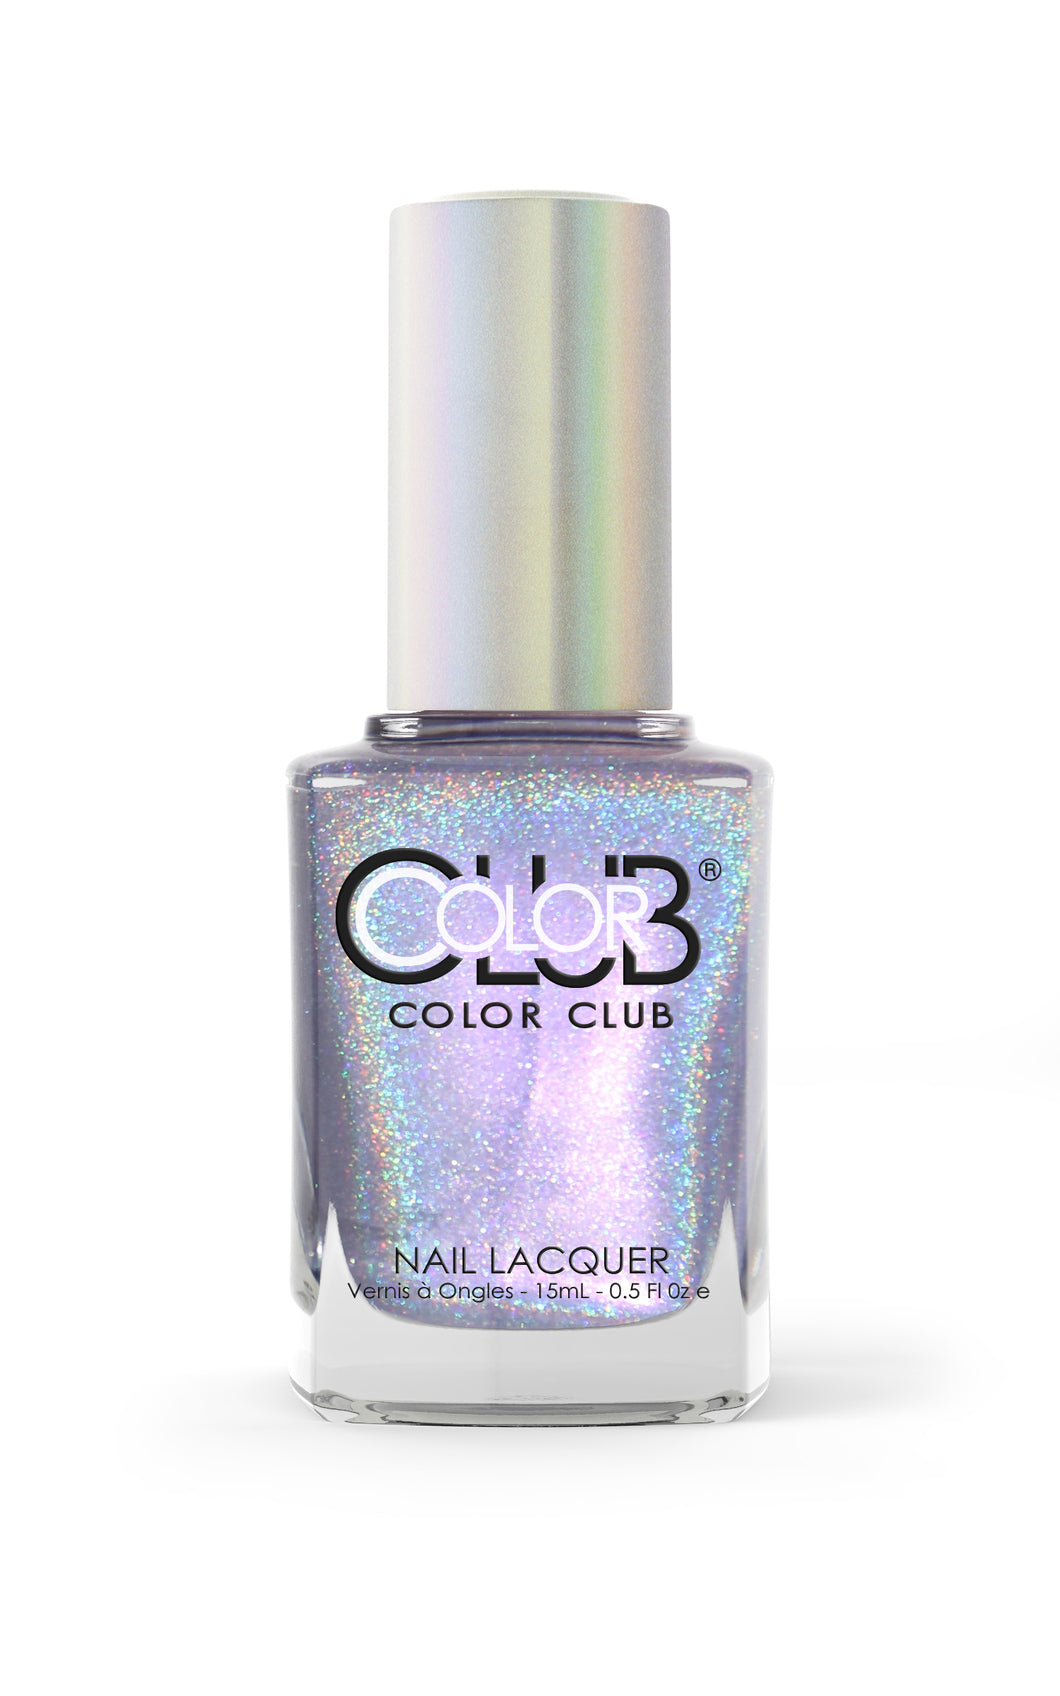 Nagellack Color Club Hologramm/Holographic - Date with Destiny #1093 - Kollektion Halo Hues